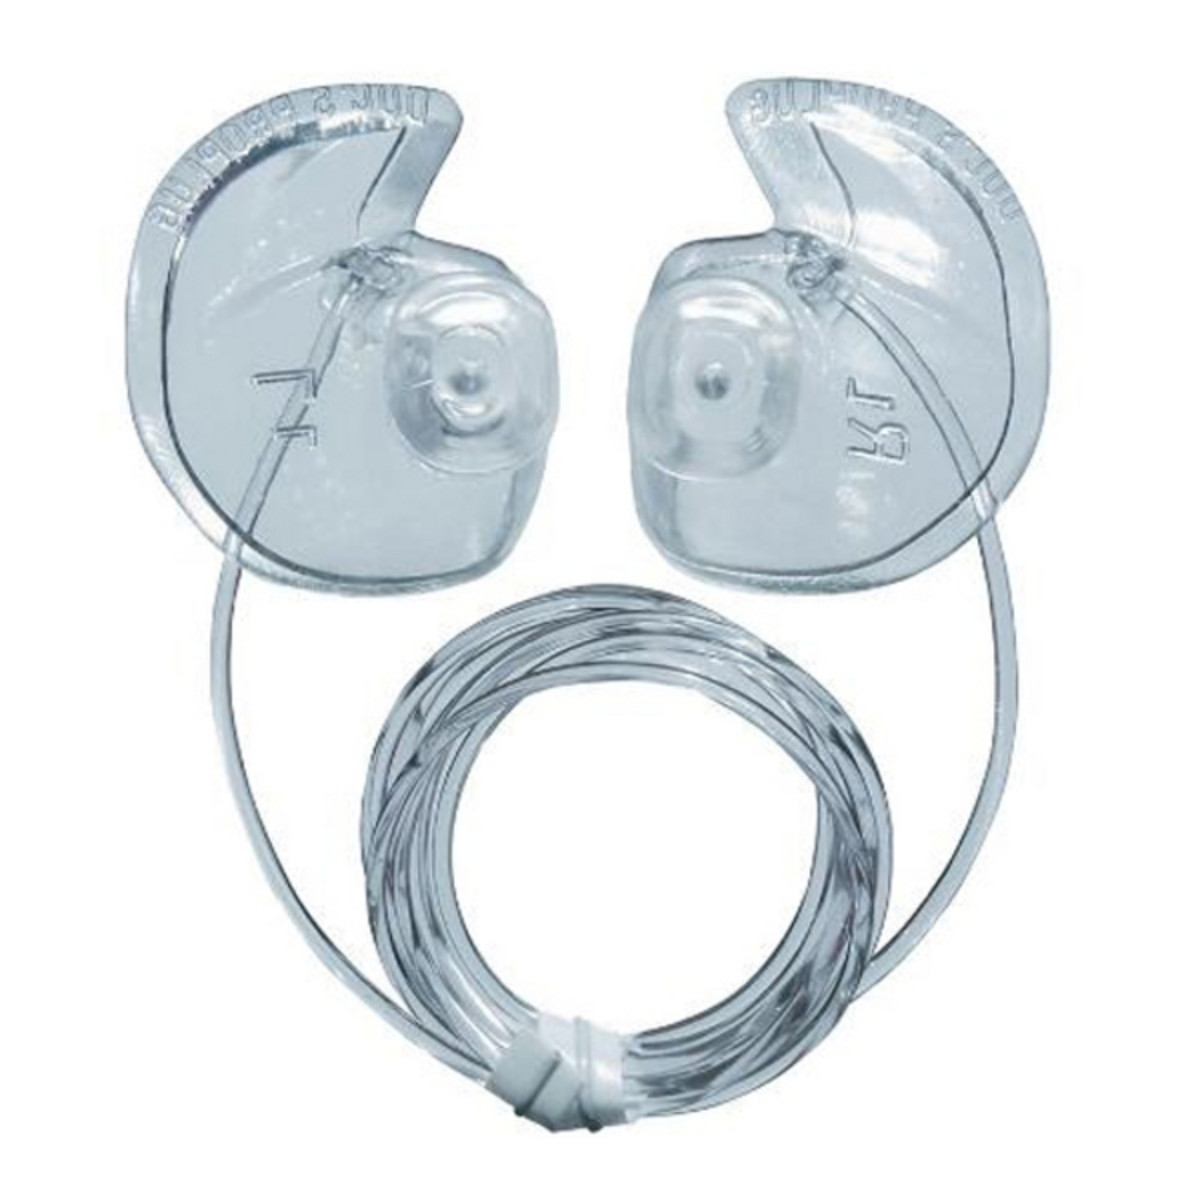 Image of Docs Pro Plugs Vented With Leash Large